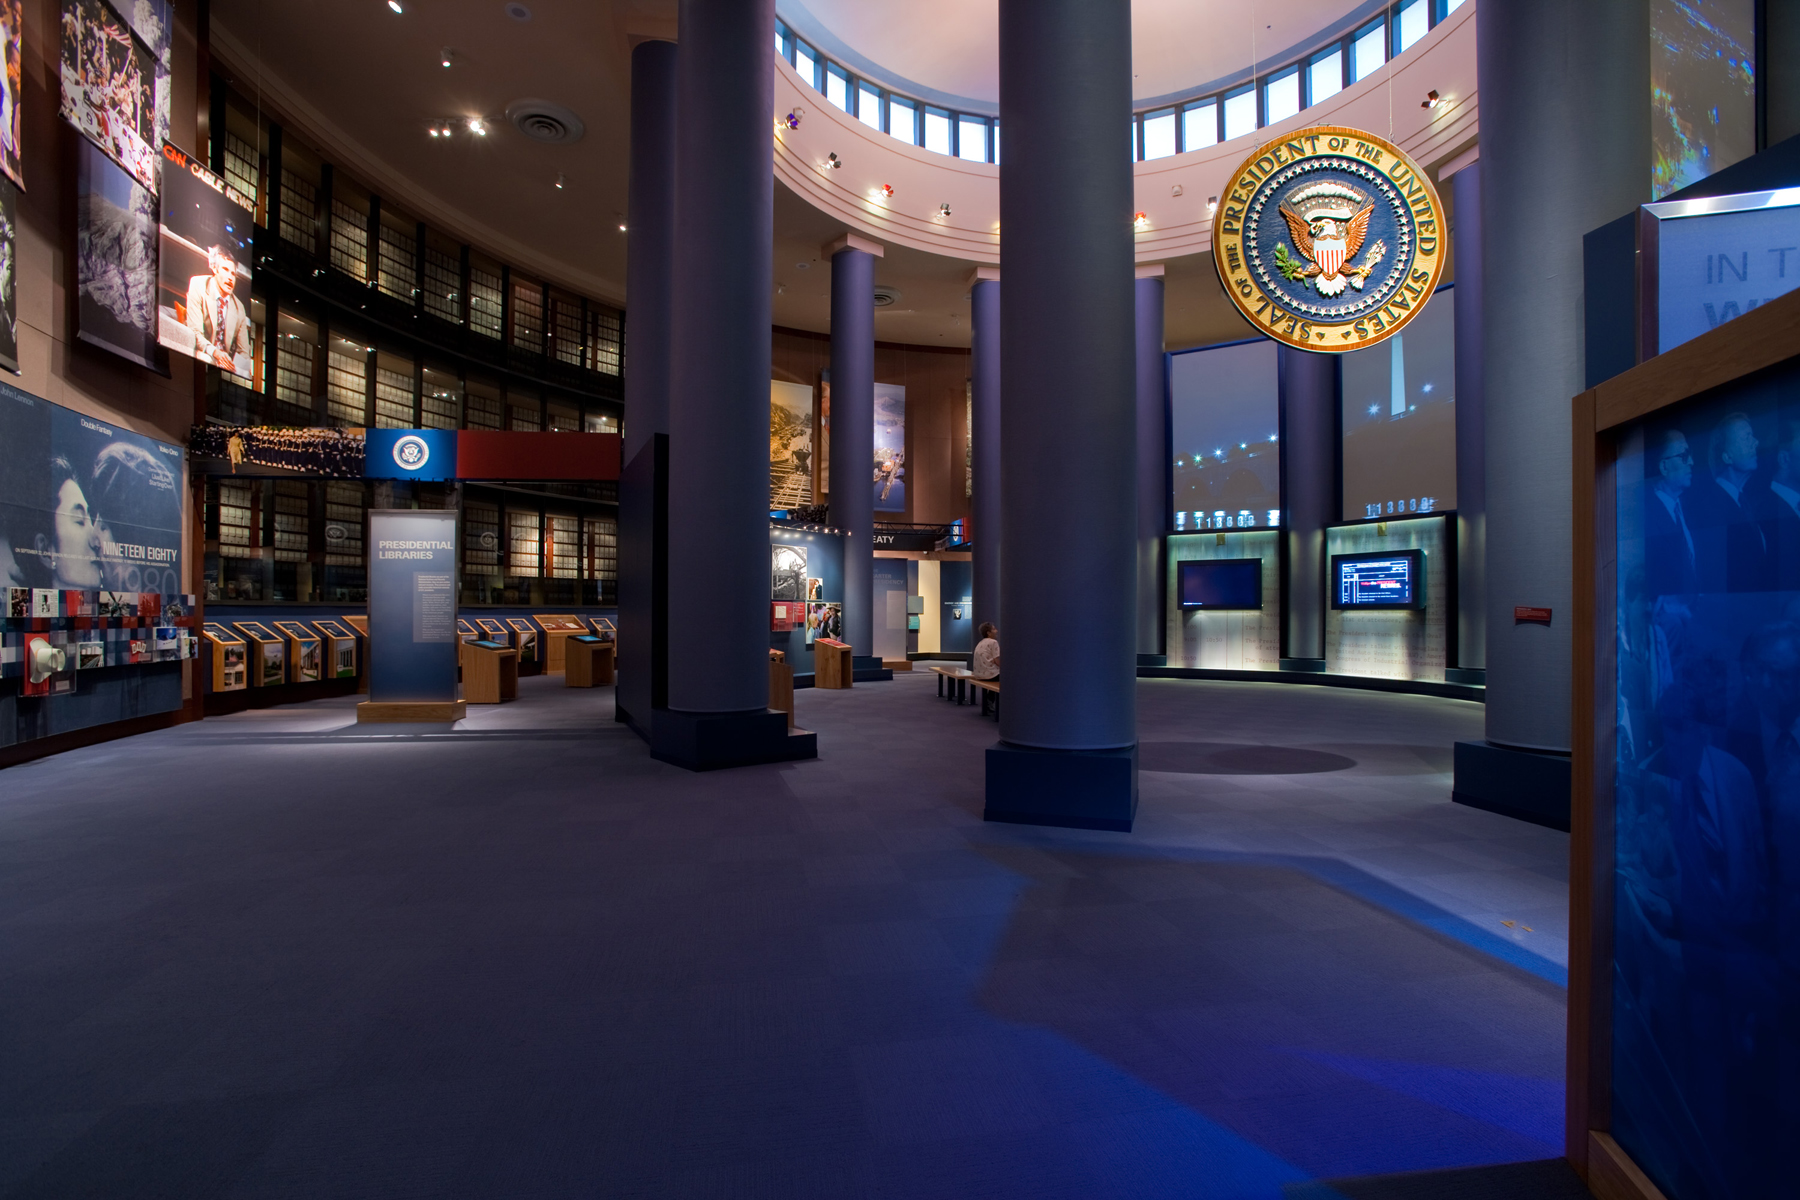 Jimmy Carter Presidential Museum and Library